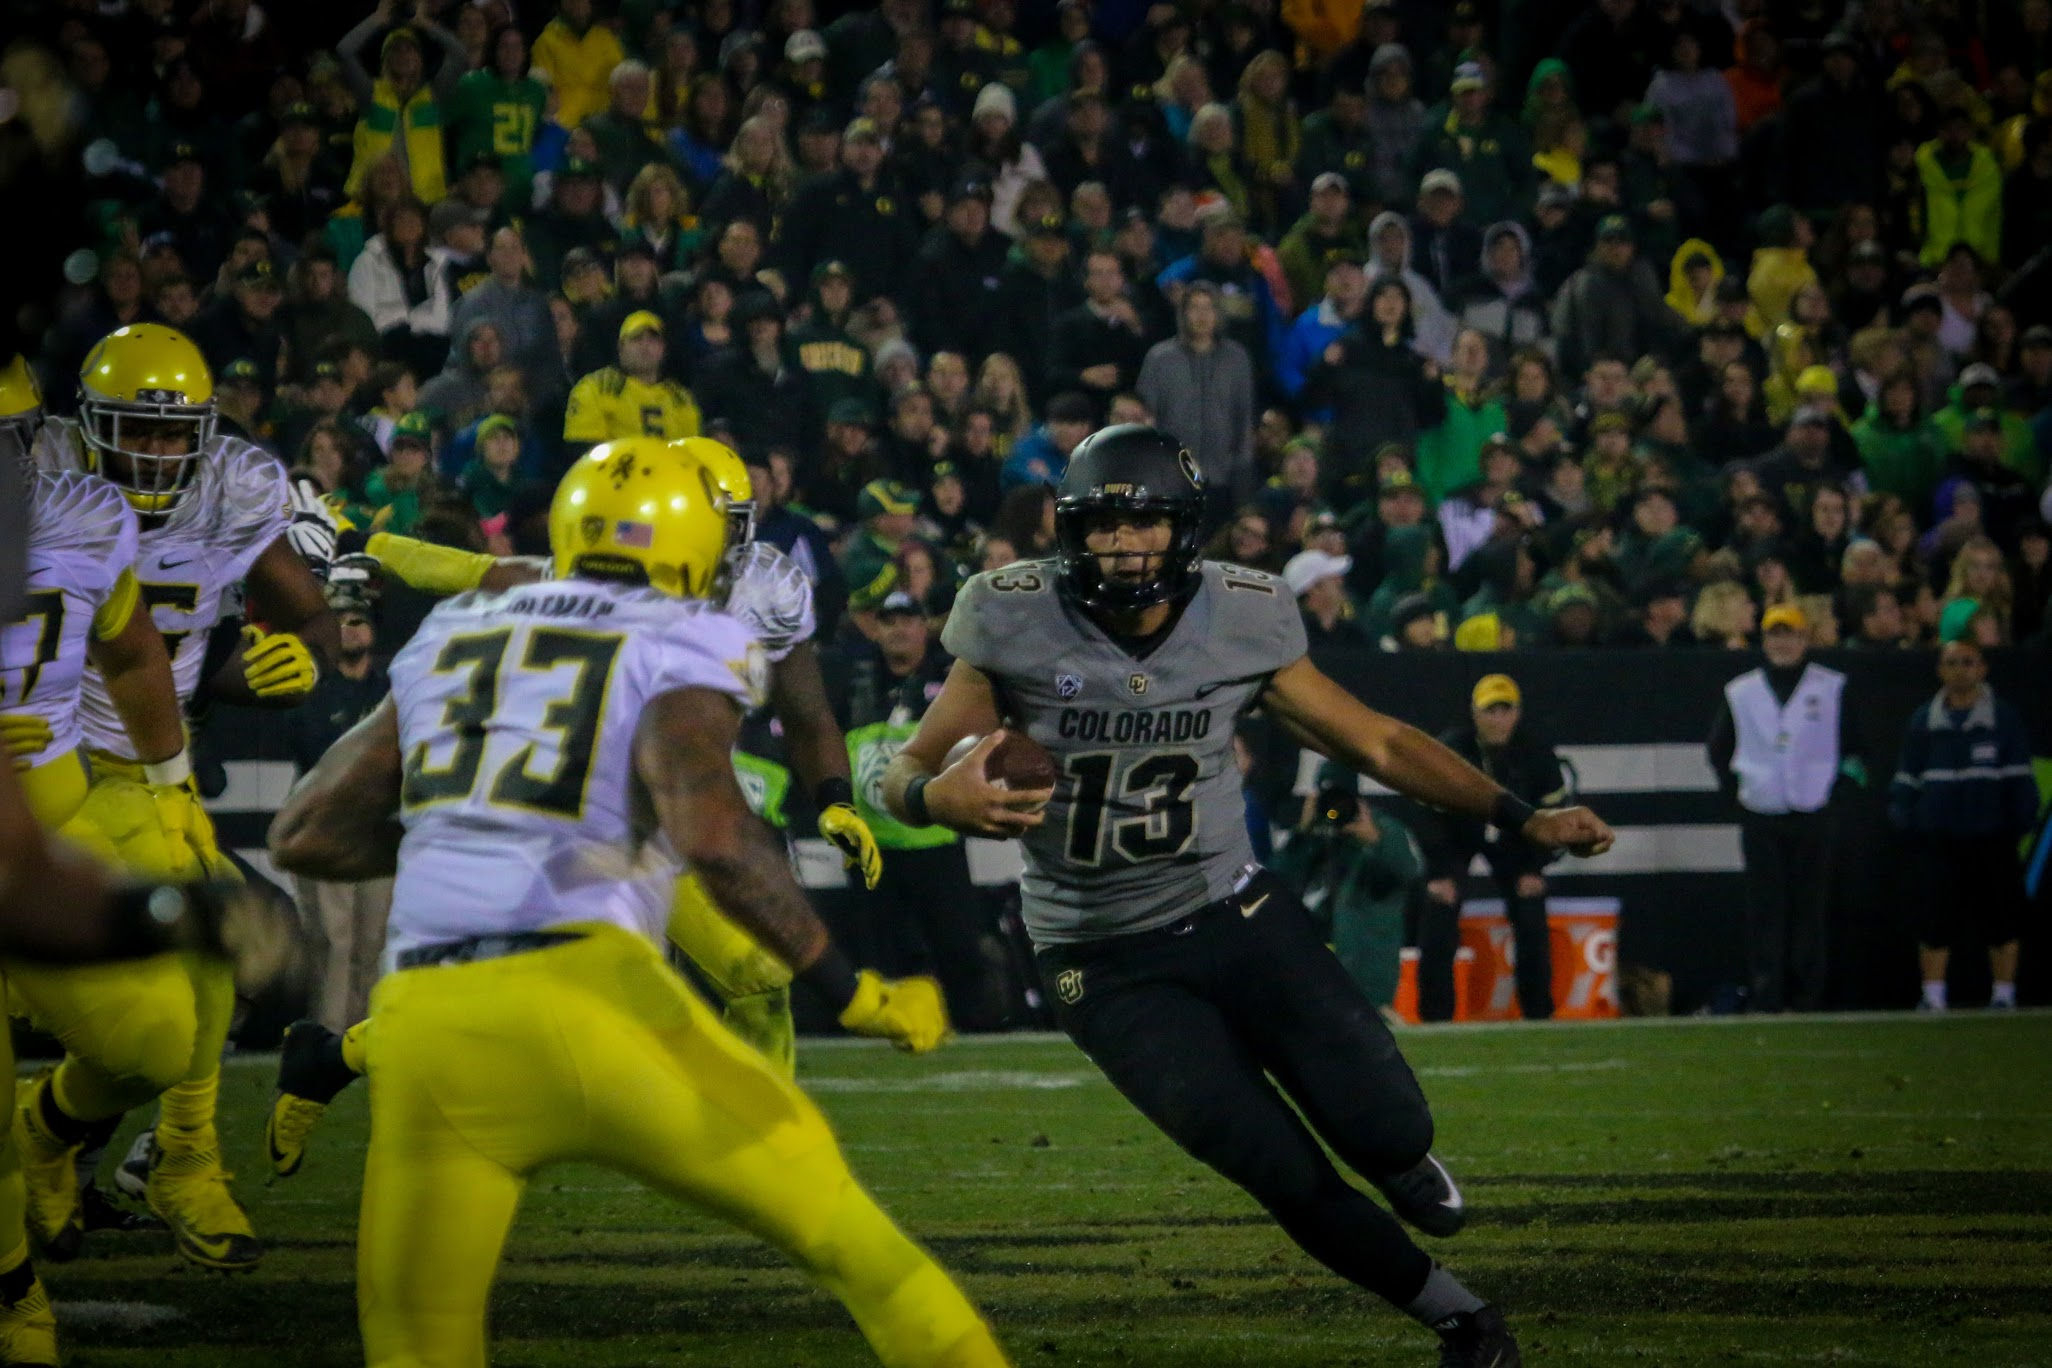 Then-junior quarterback Sefo Liufau rushes the ball into the end zone for his first rushing touchdown of the season during the Buffs' 41-24 loss to the Oregon Ducks at Folsom Field on Saturday, Sept. 4, 2015. (Robert Hylton/CU Independent file)